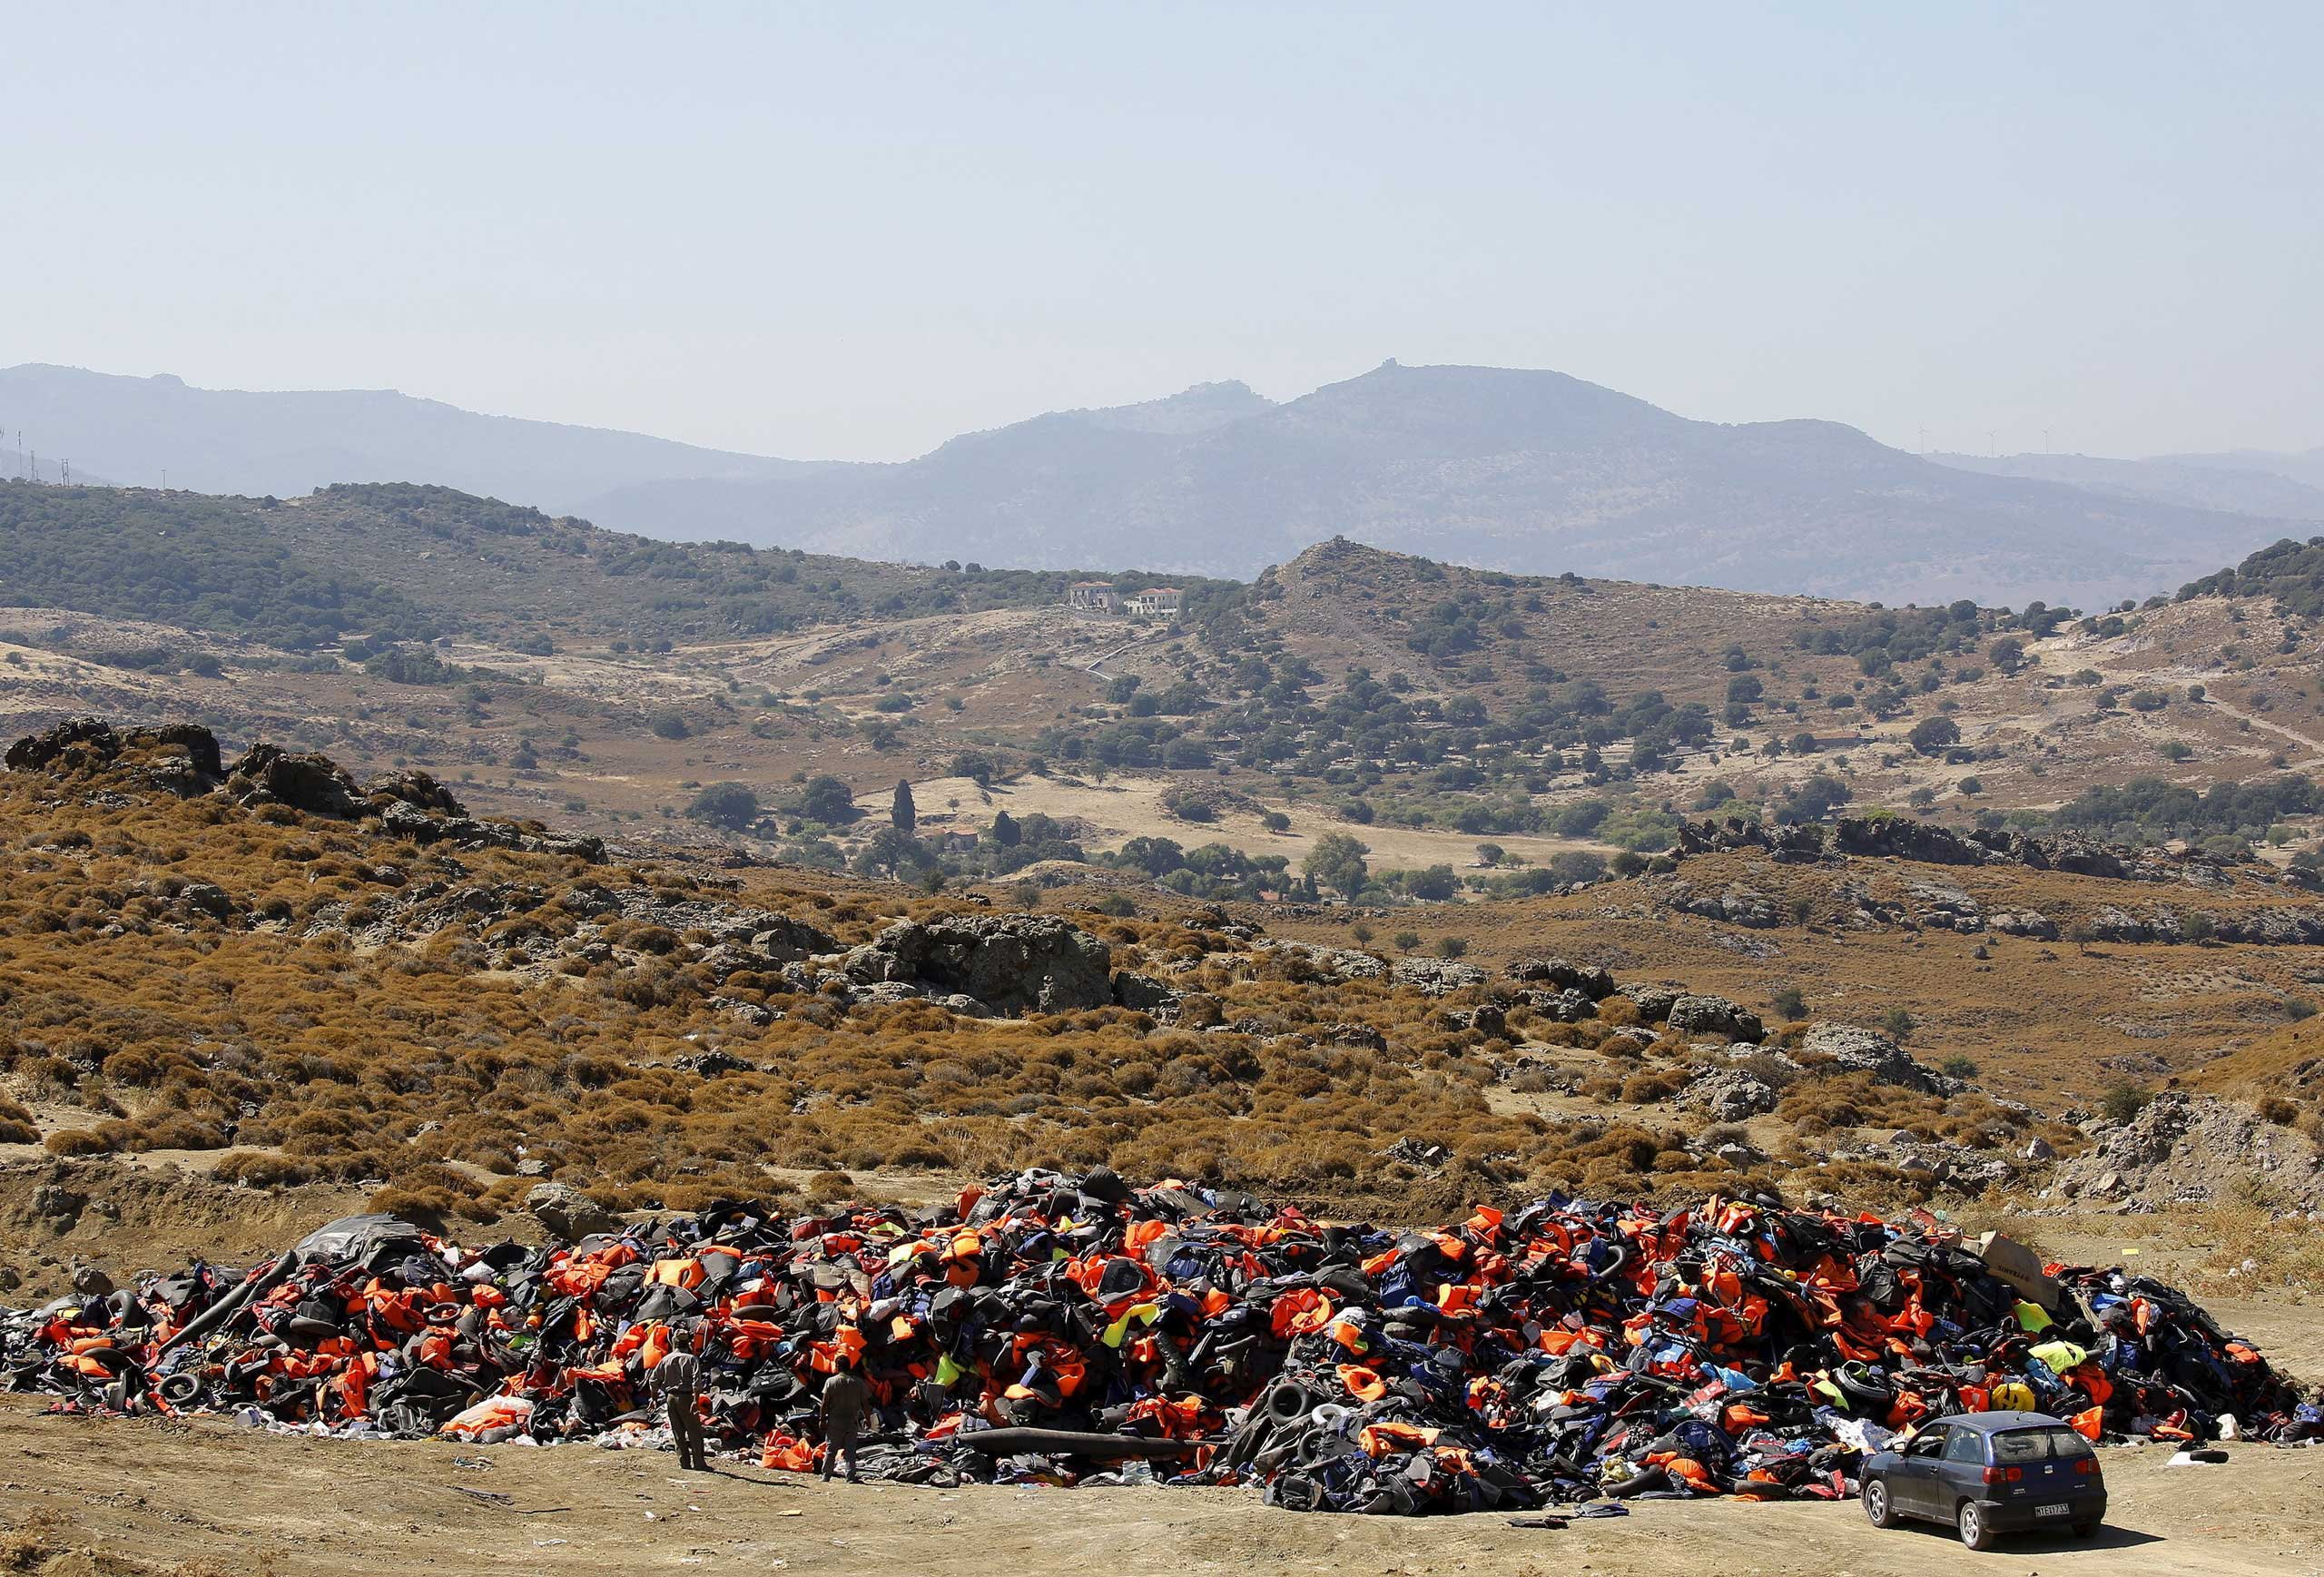 Locals survey a huge pile of deflated dinghies, tubes and life vests left by arriving refugees and migrants on the Greek island of Lesbos, on Sept. 18, 2015.